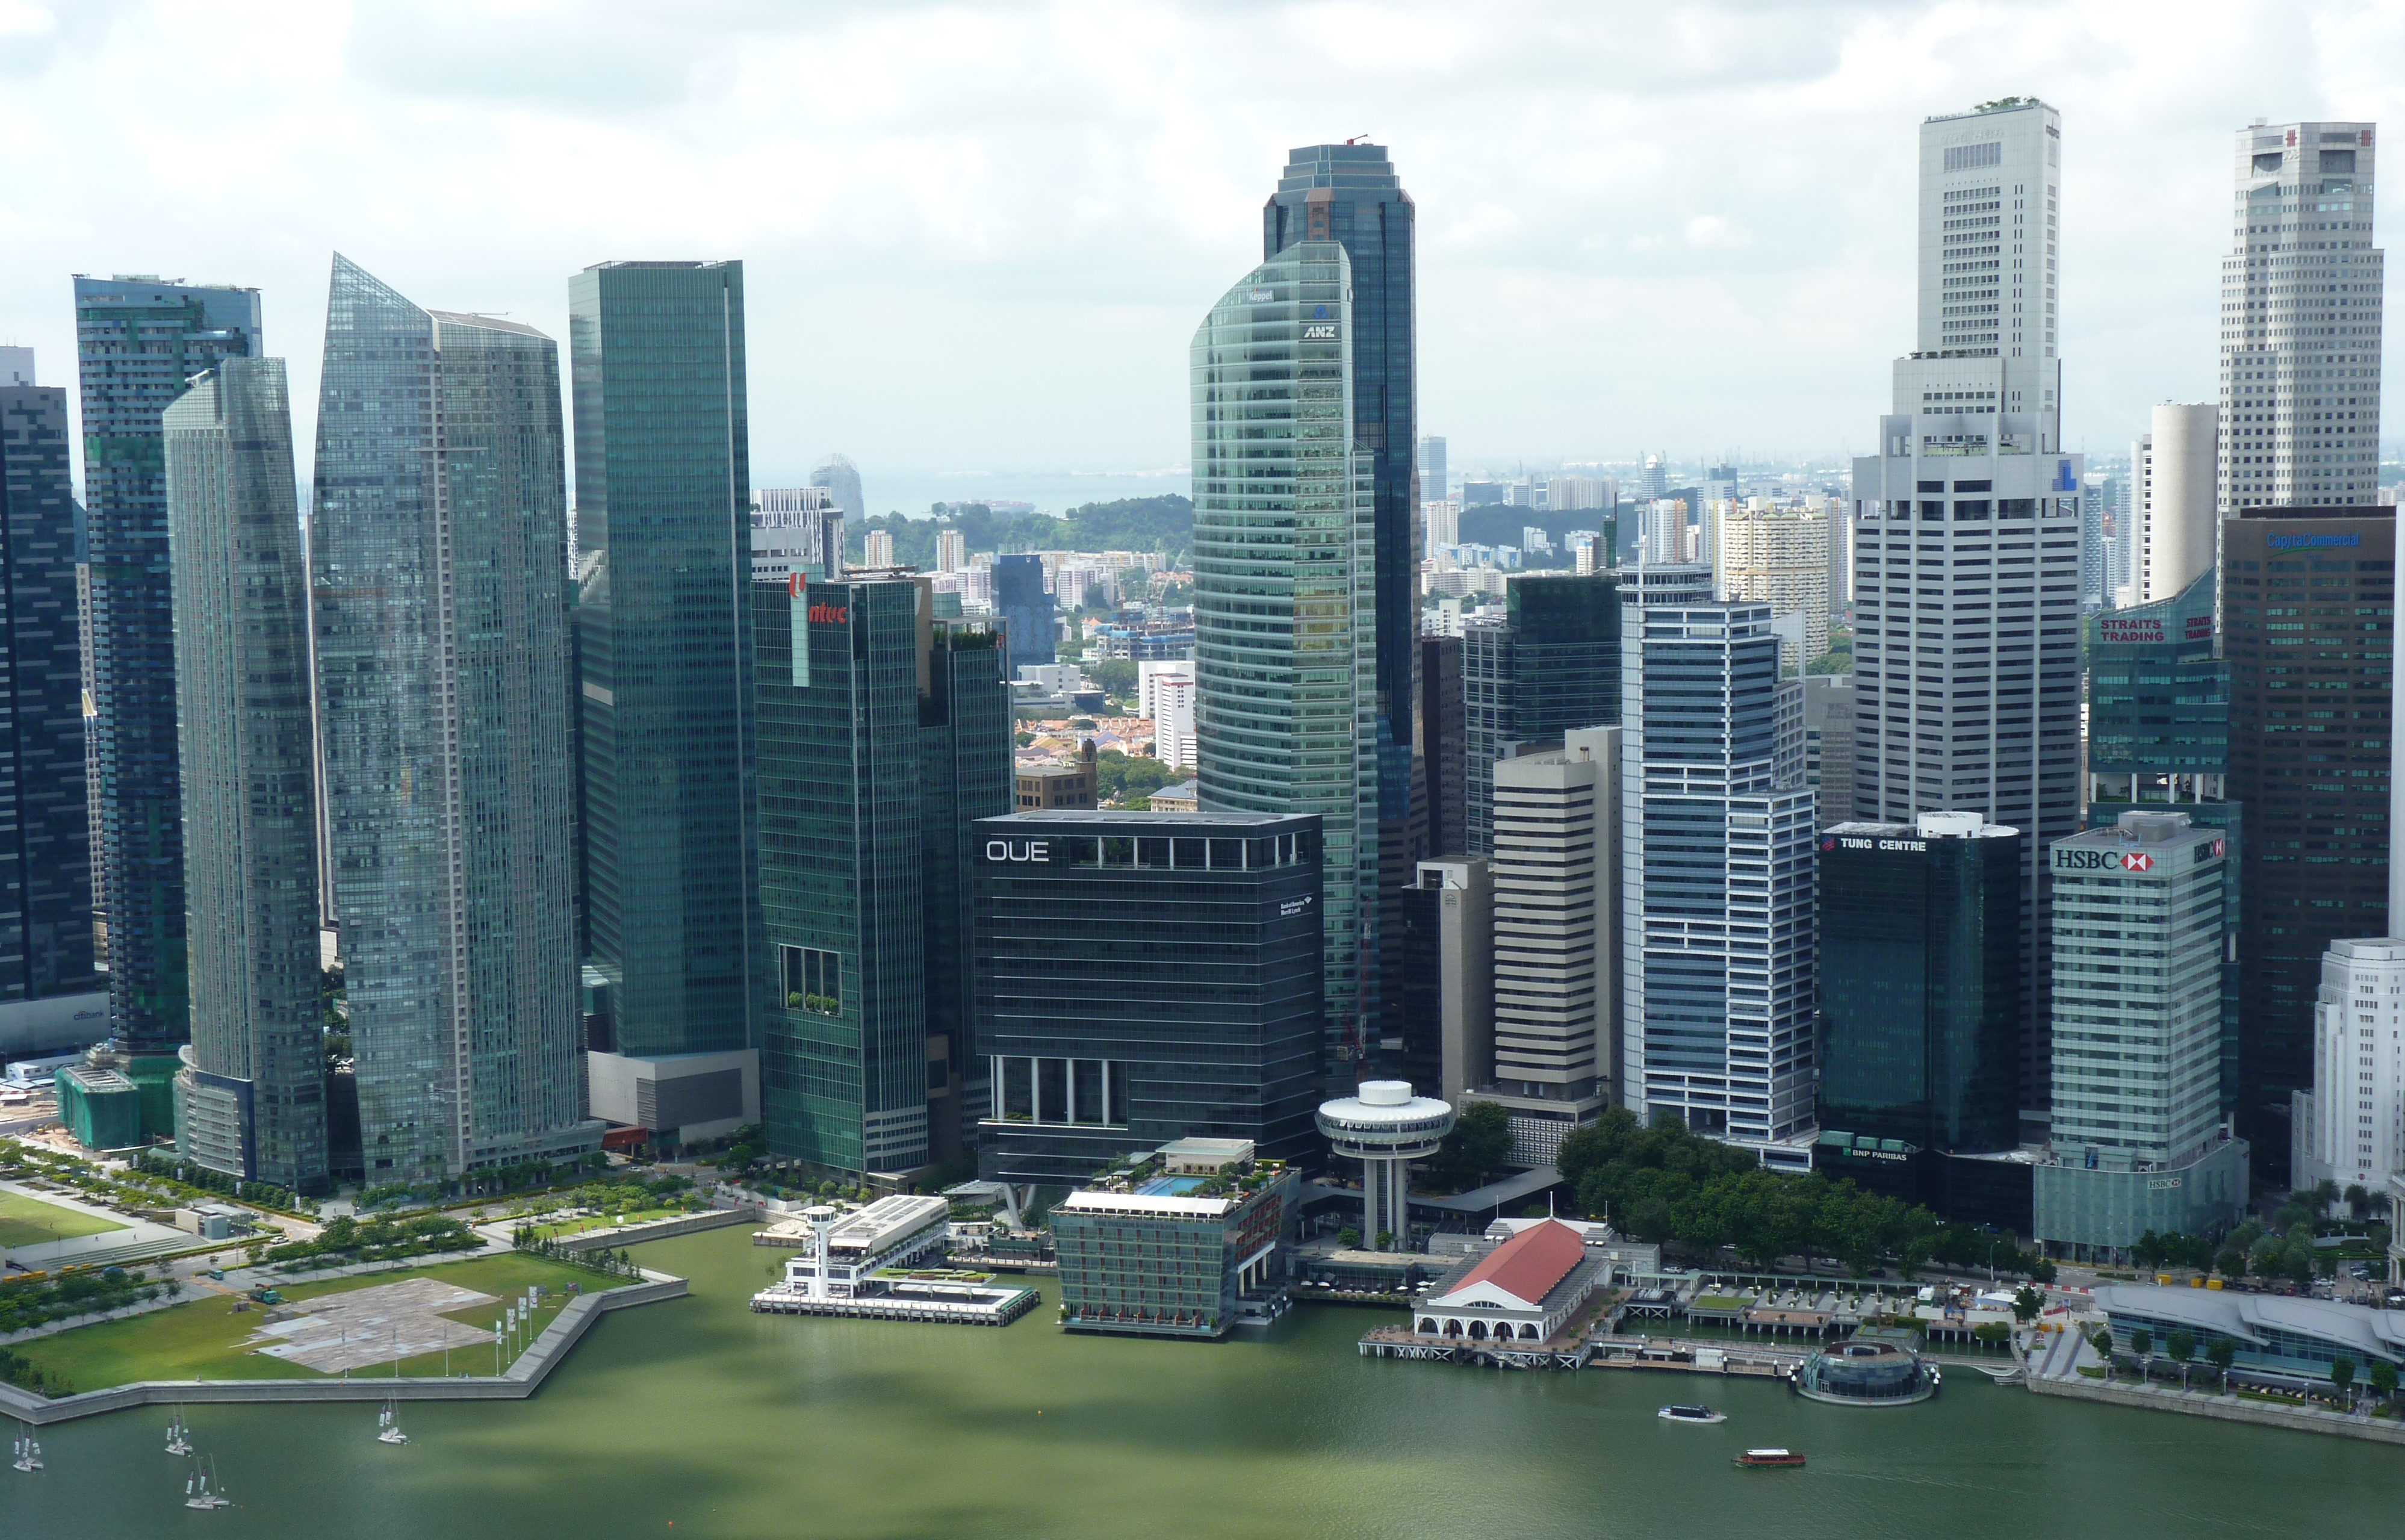 drone new with File Skyscrapers In Singapore on 7358329920 together with 7014613909 also Croatian Stereographic Projections additionally Cinefly drone uav aerial geelong waterfront likewise Drones Multirotors c 116.